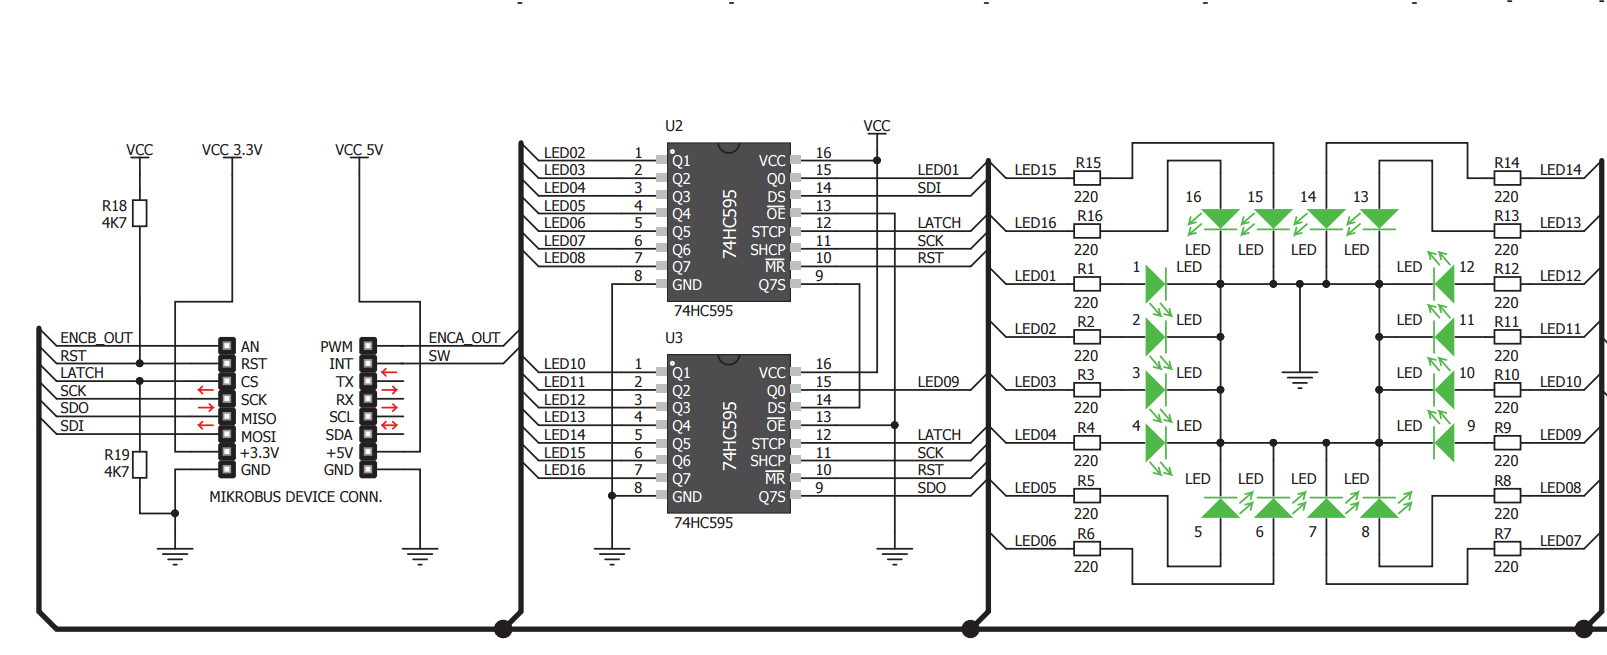 Leds And Bit Shifting A Shift Register Tutorial Blinking Led Circuit Click For Pdf Version